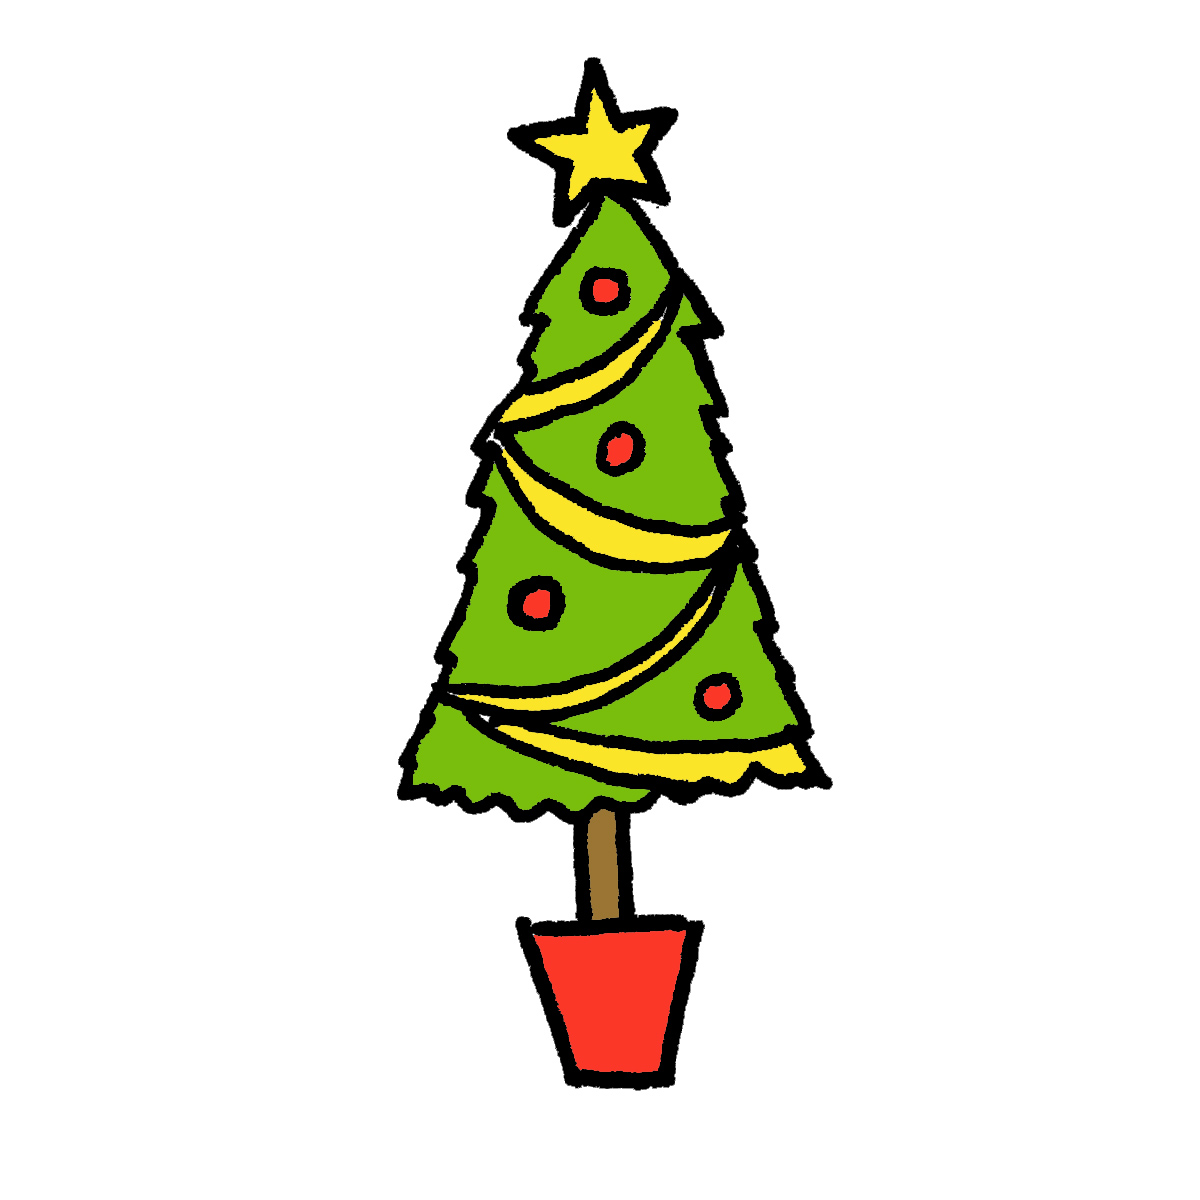 Tall christmas tree clipart clip black and white library How to Draw a Christmas Tree: 4 Cartoon Tutorials clip black and white library